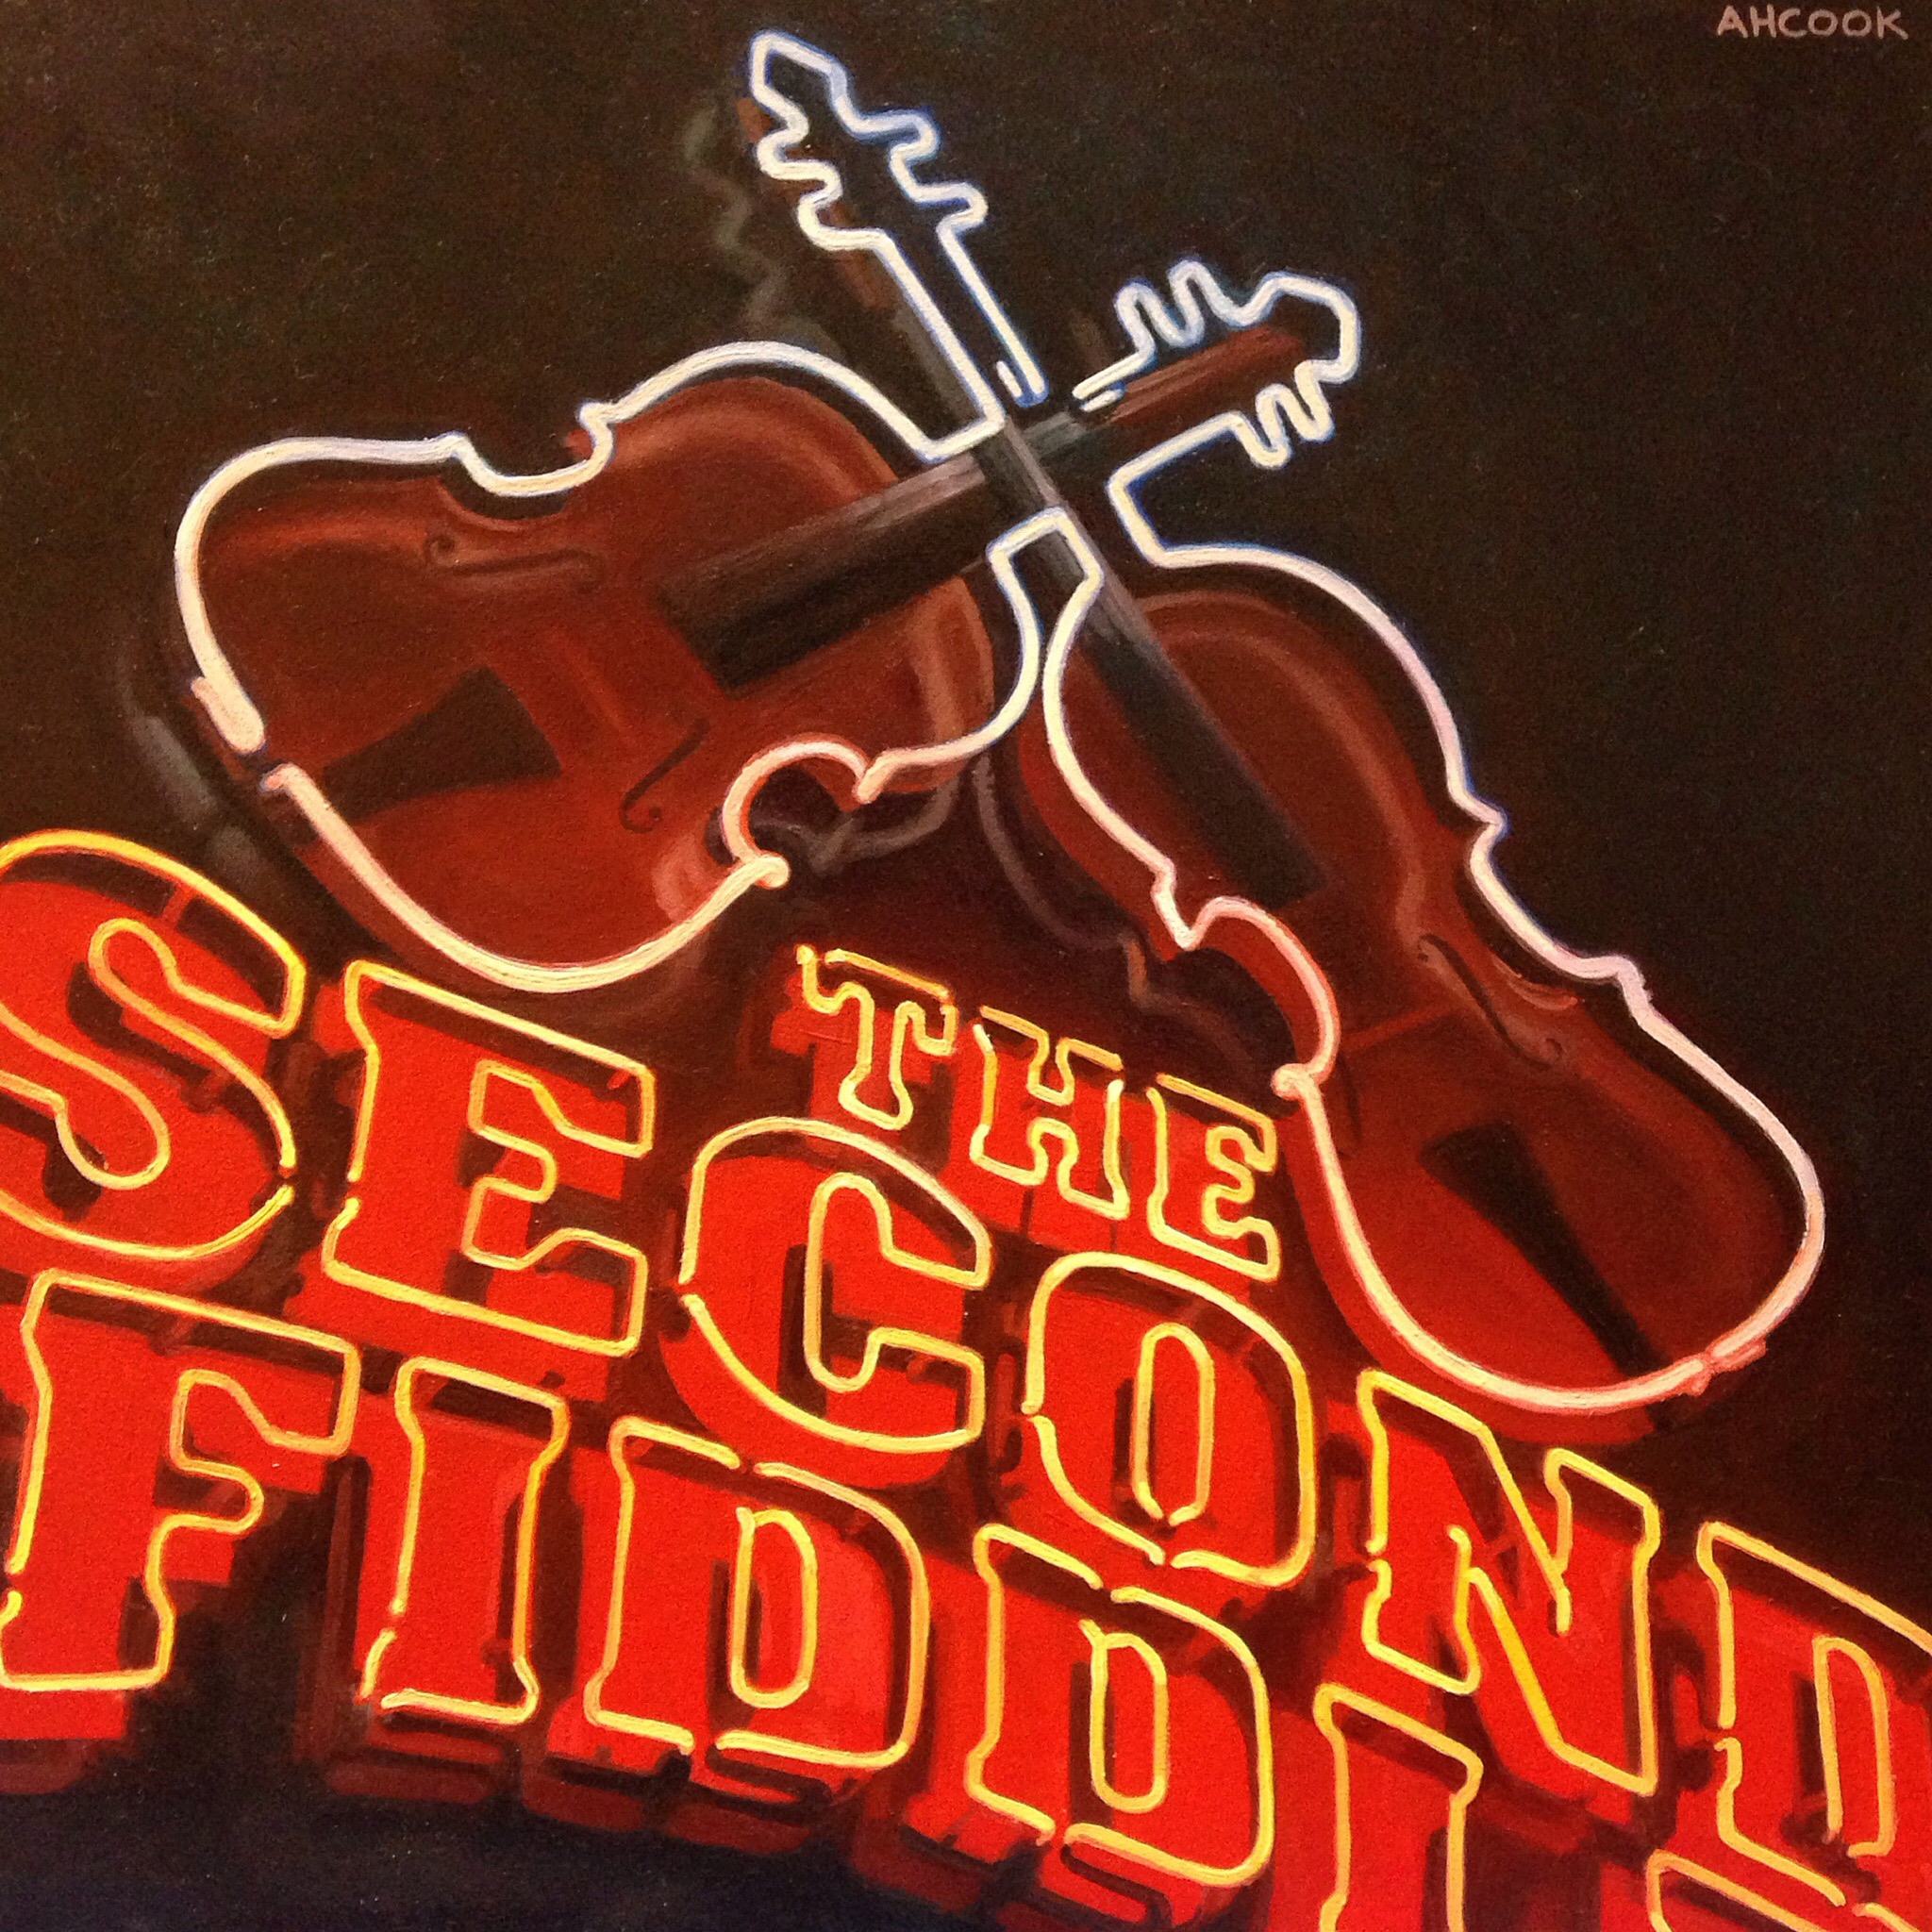 TheSecondFiddle12x12.JPG